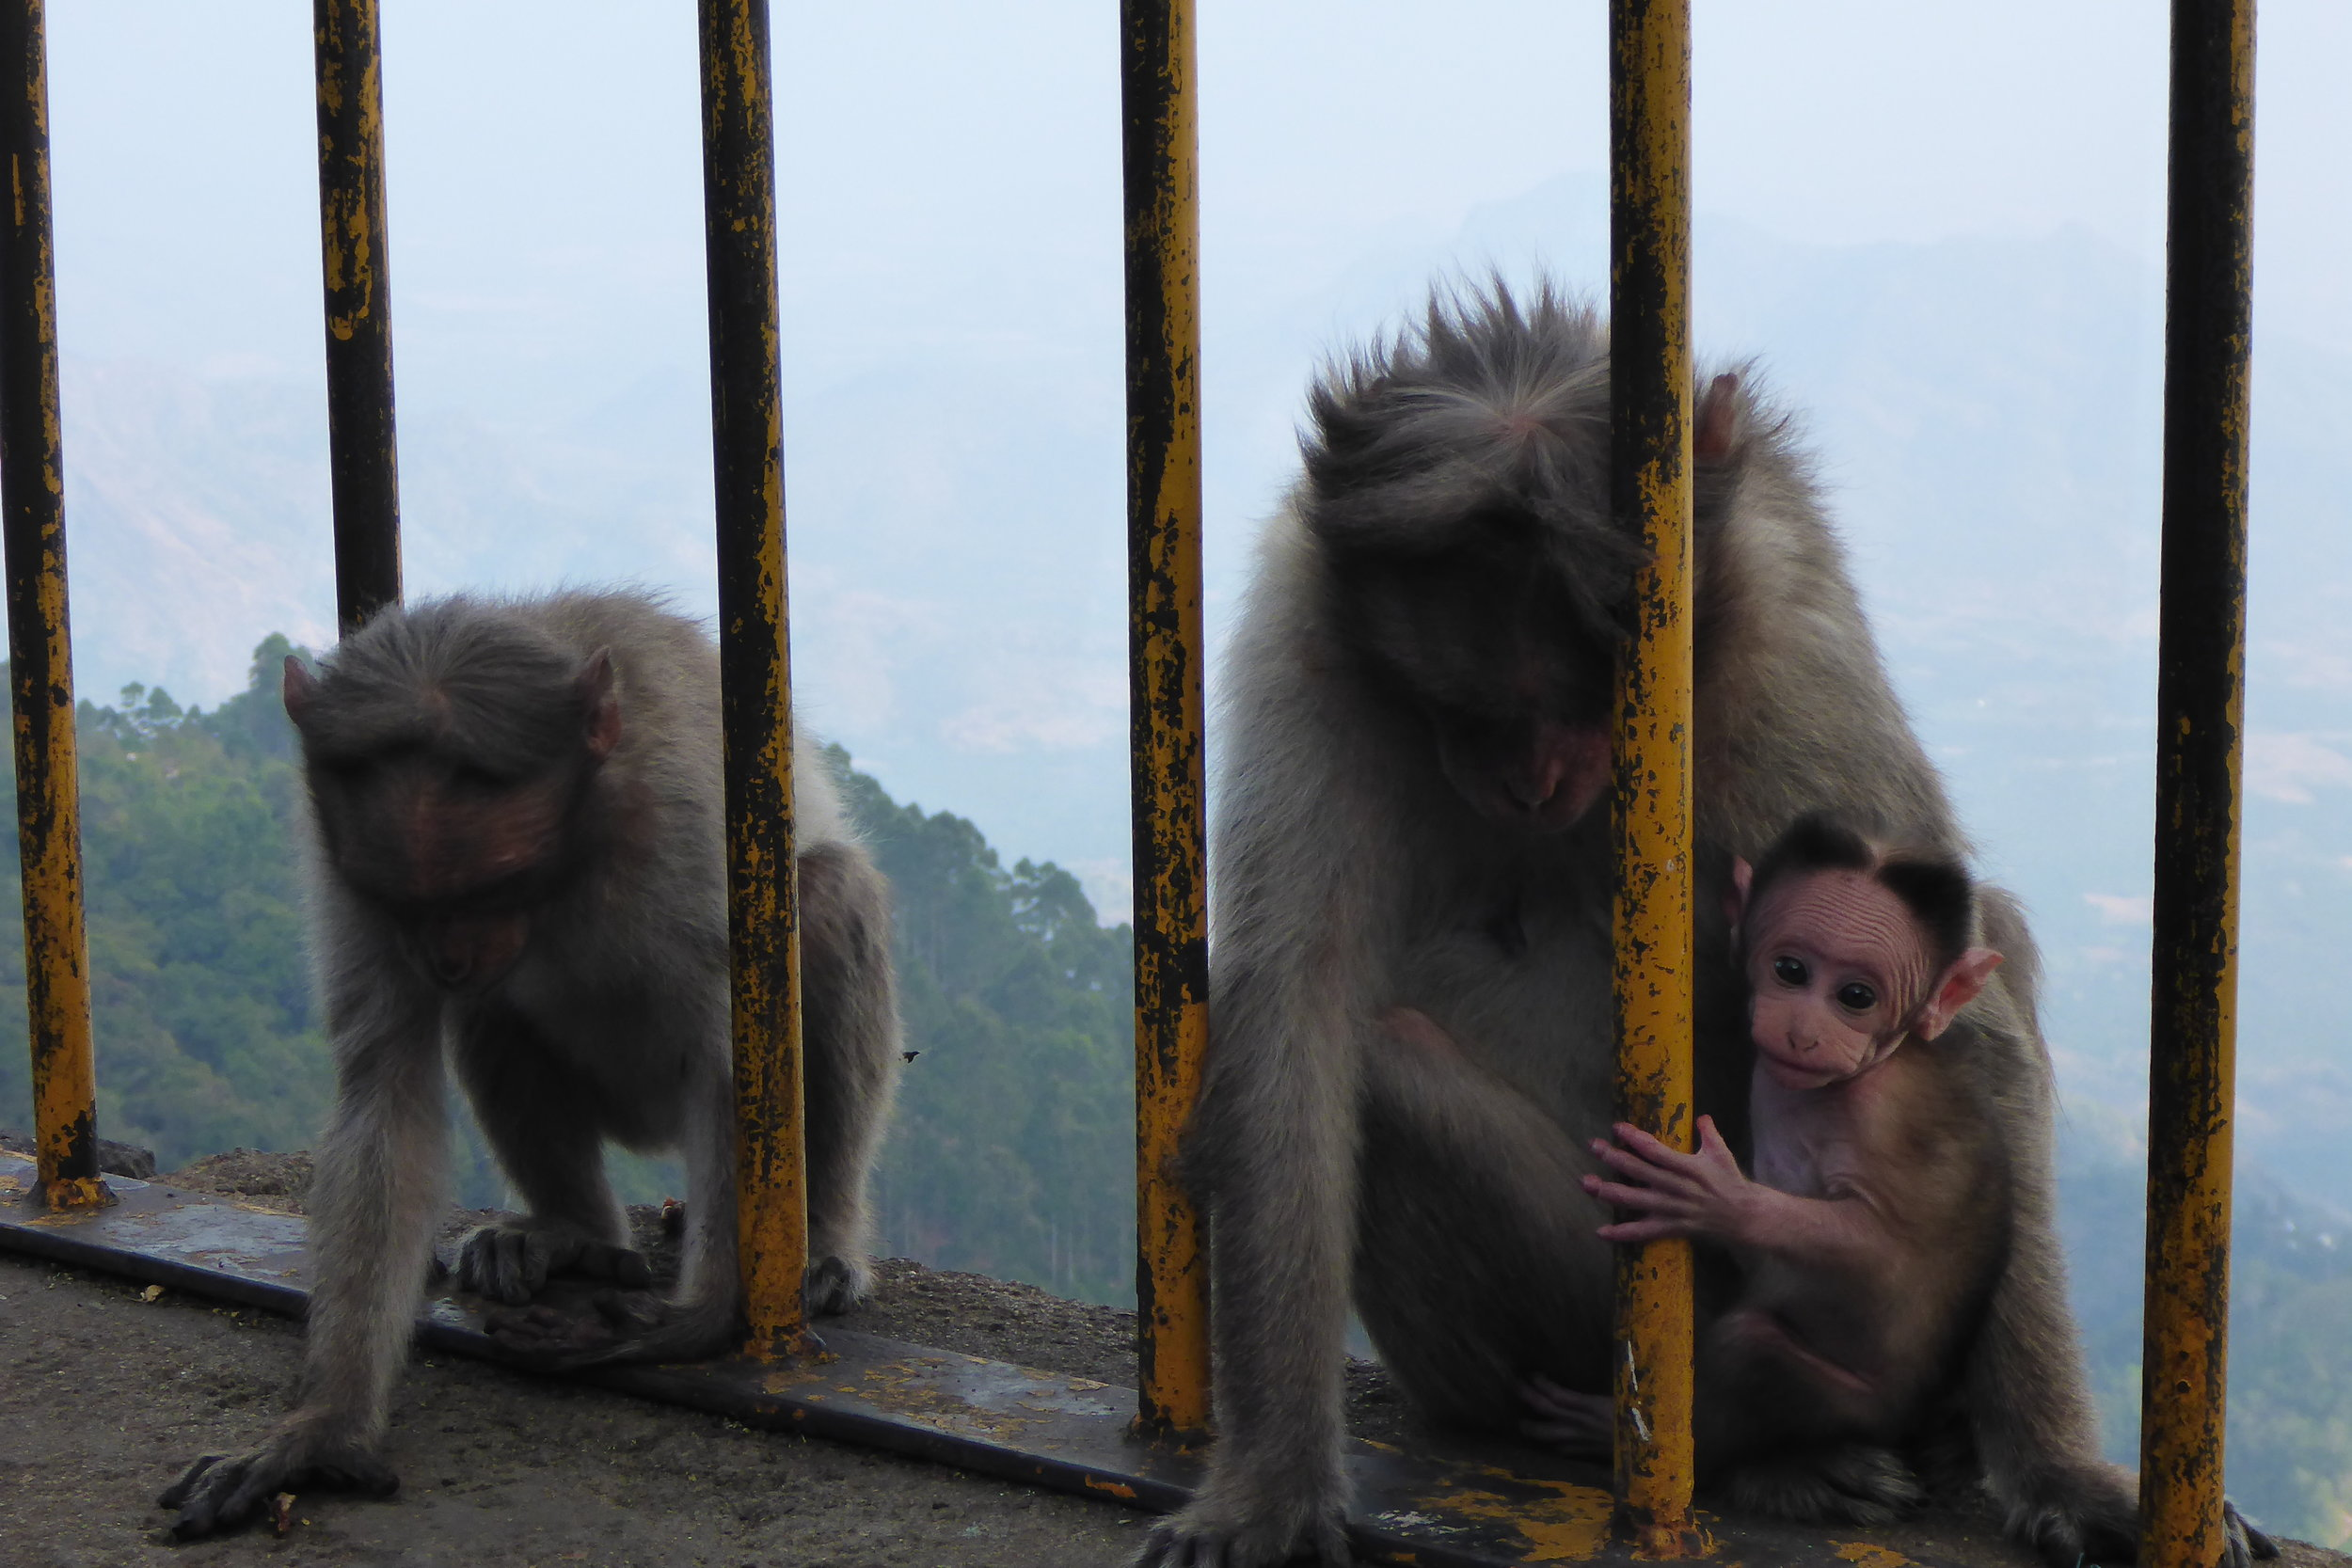 Indian Macaques